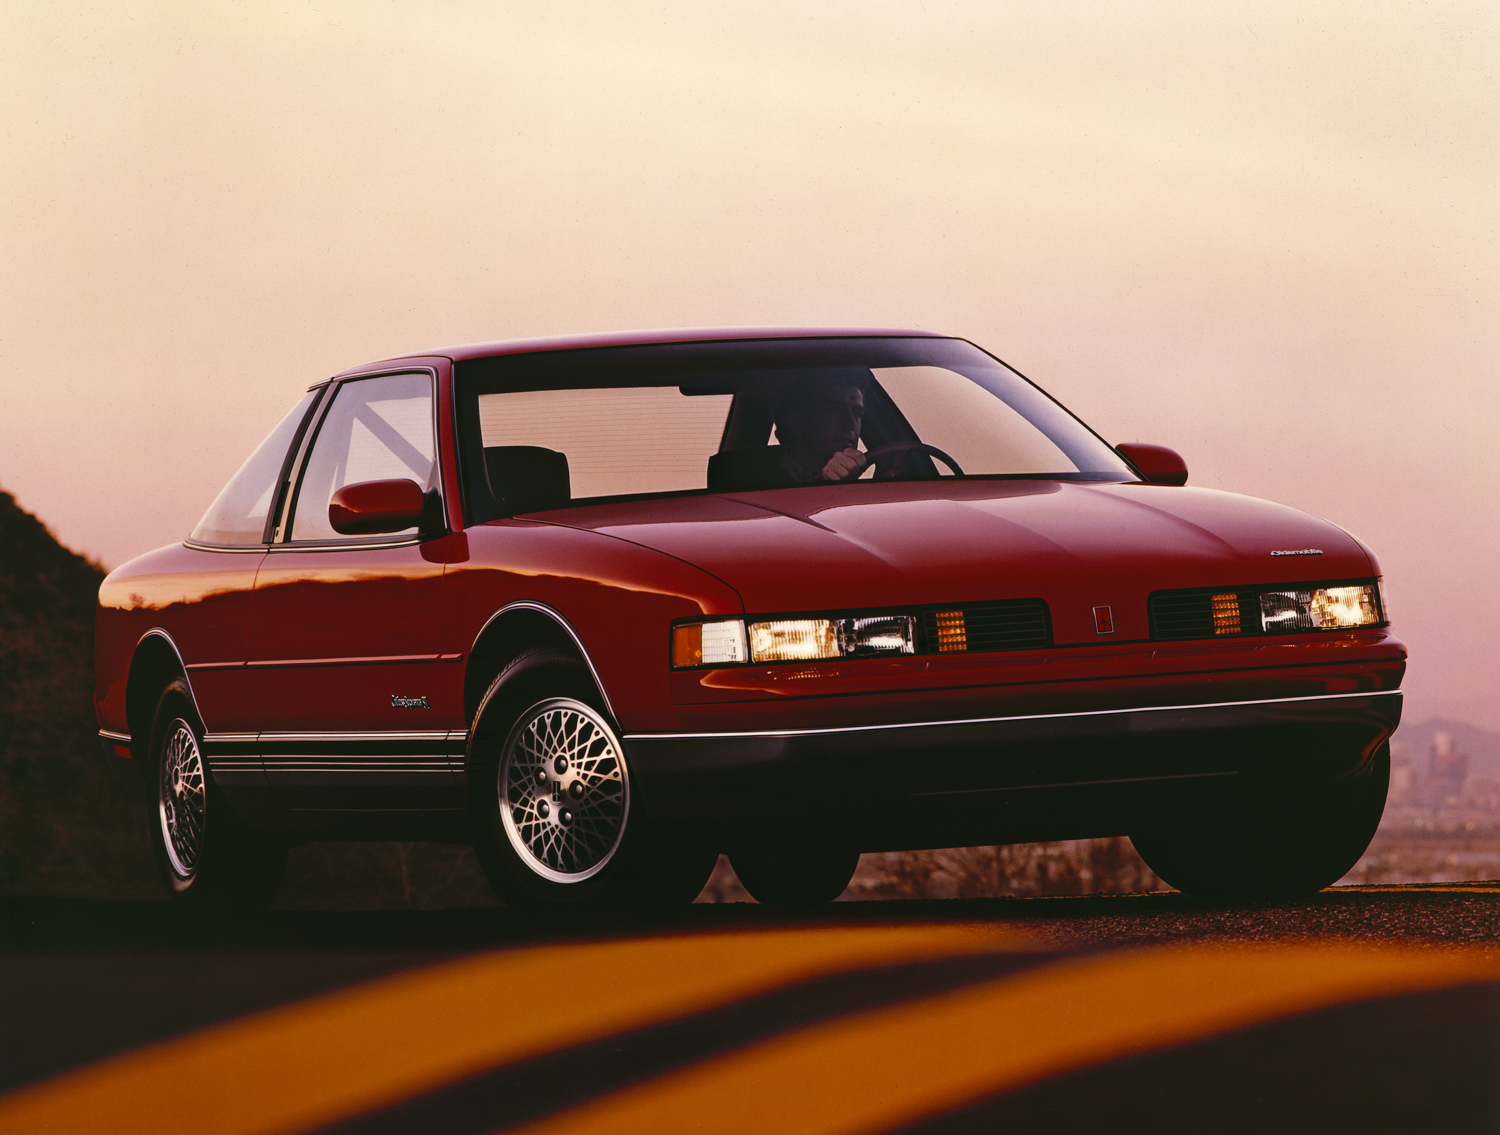 1989 Oldsmobile Cutlass Supreme front 3/4 red